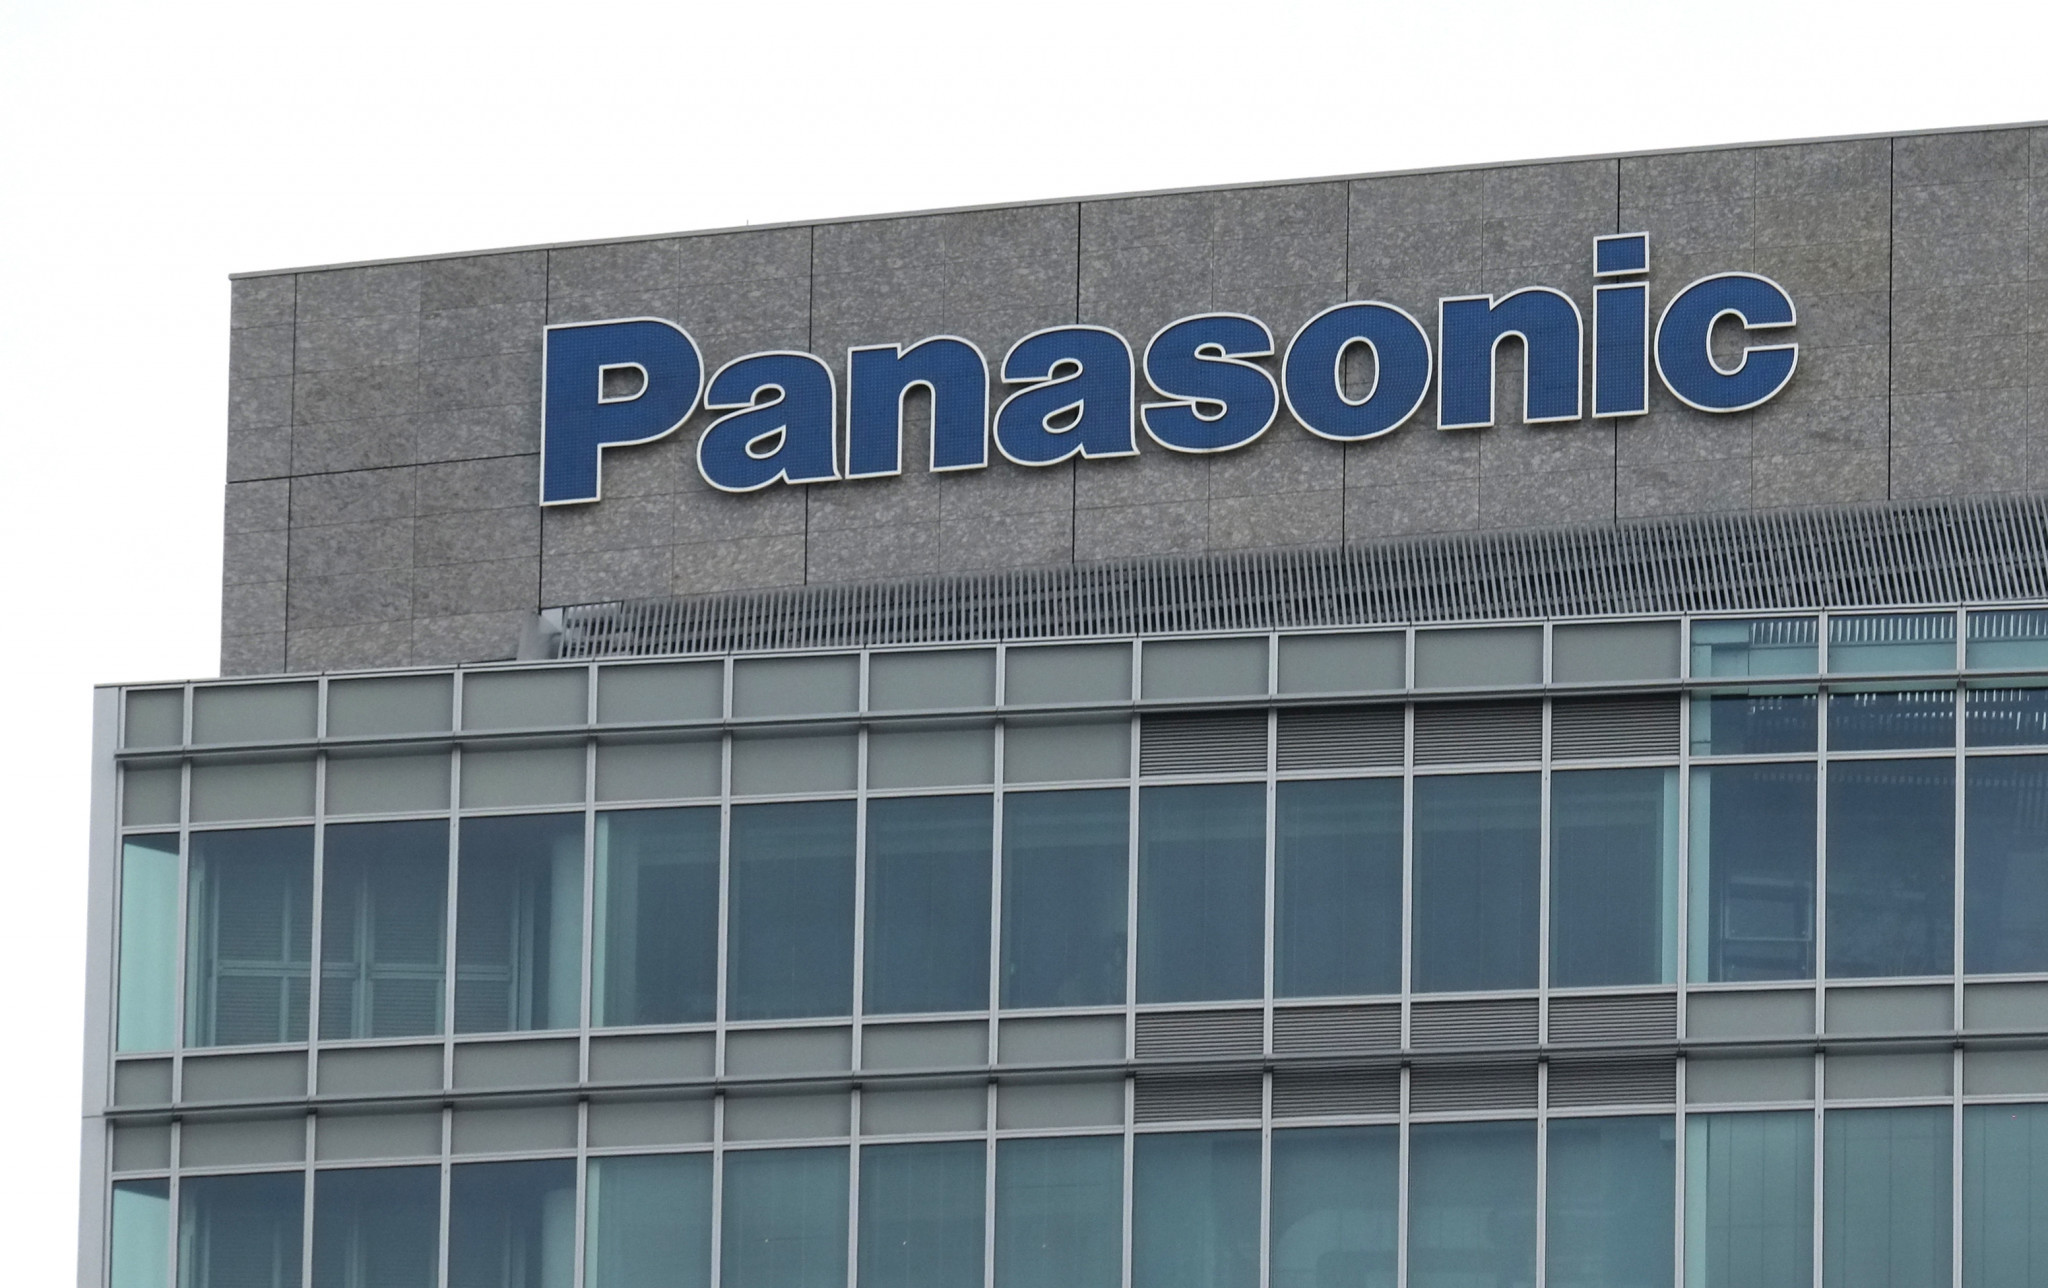 Panasonic Corporation becomes supporting partner of Tokyo 2020 Olympic Torch Relay